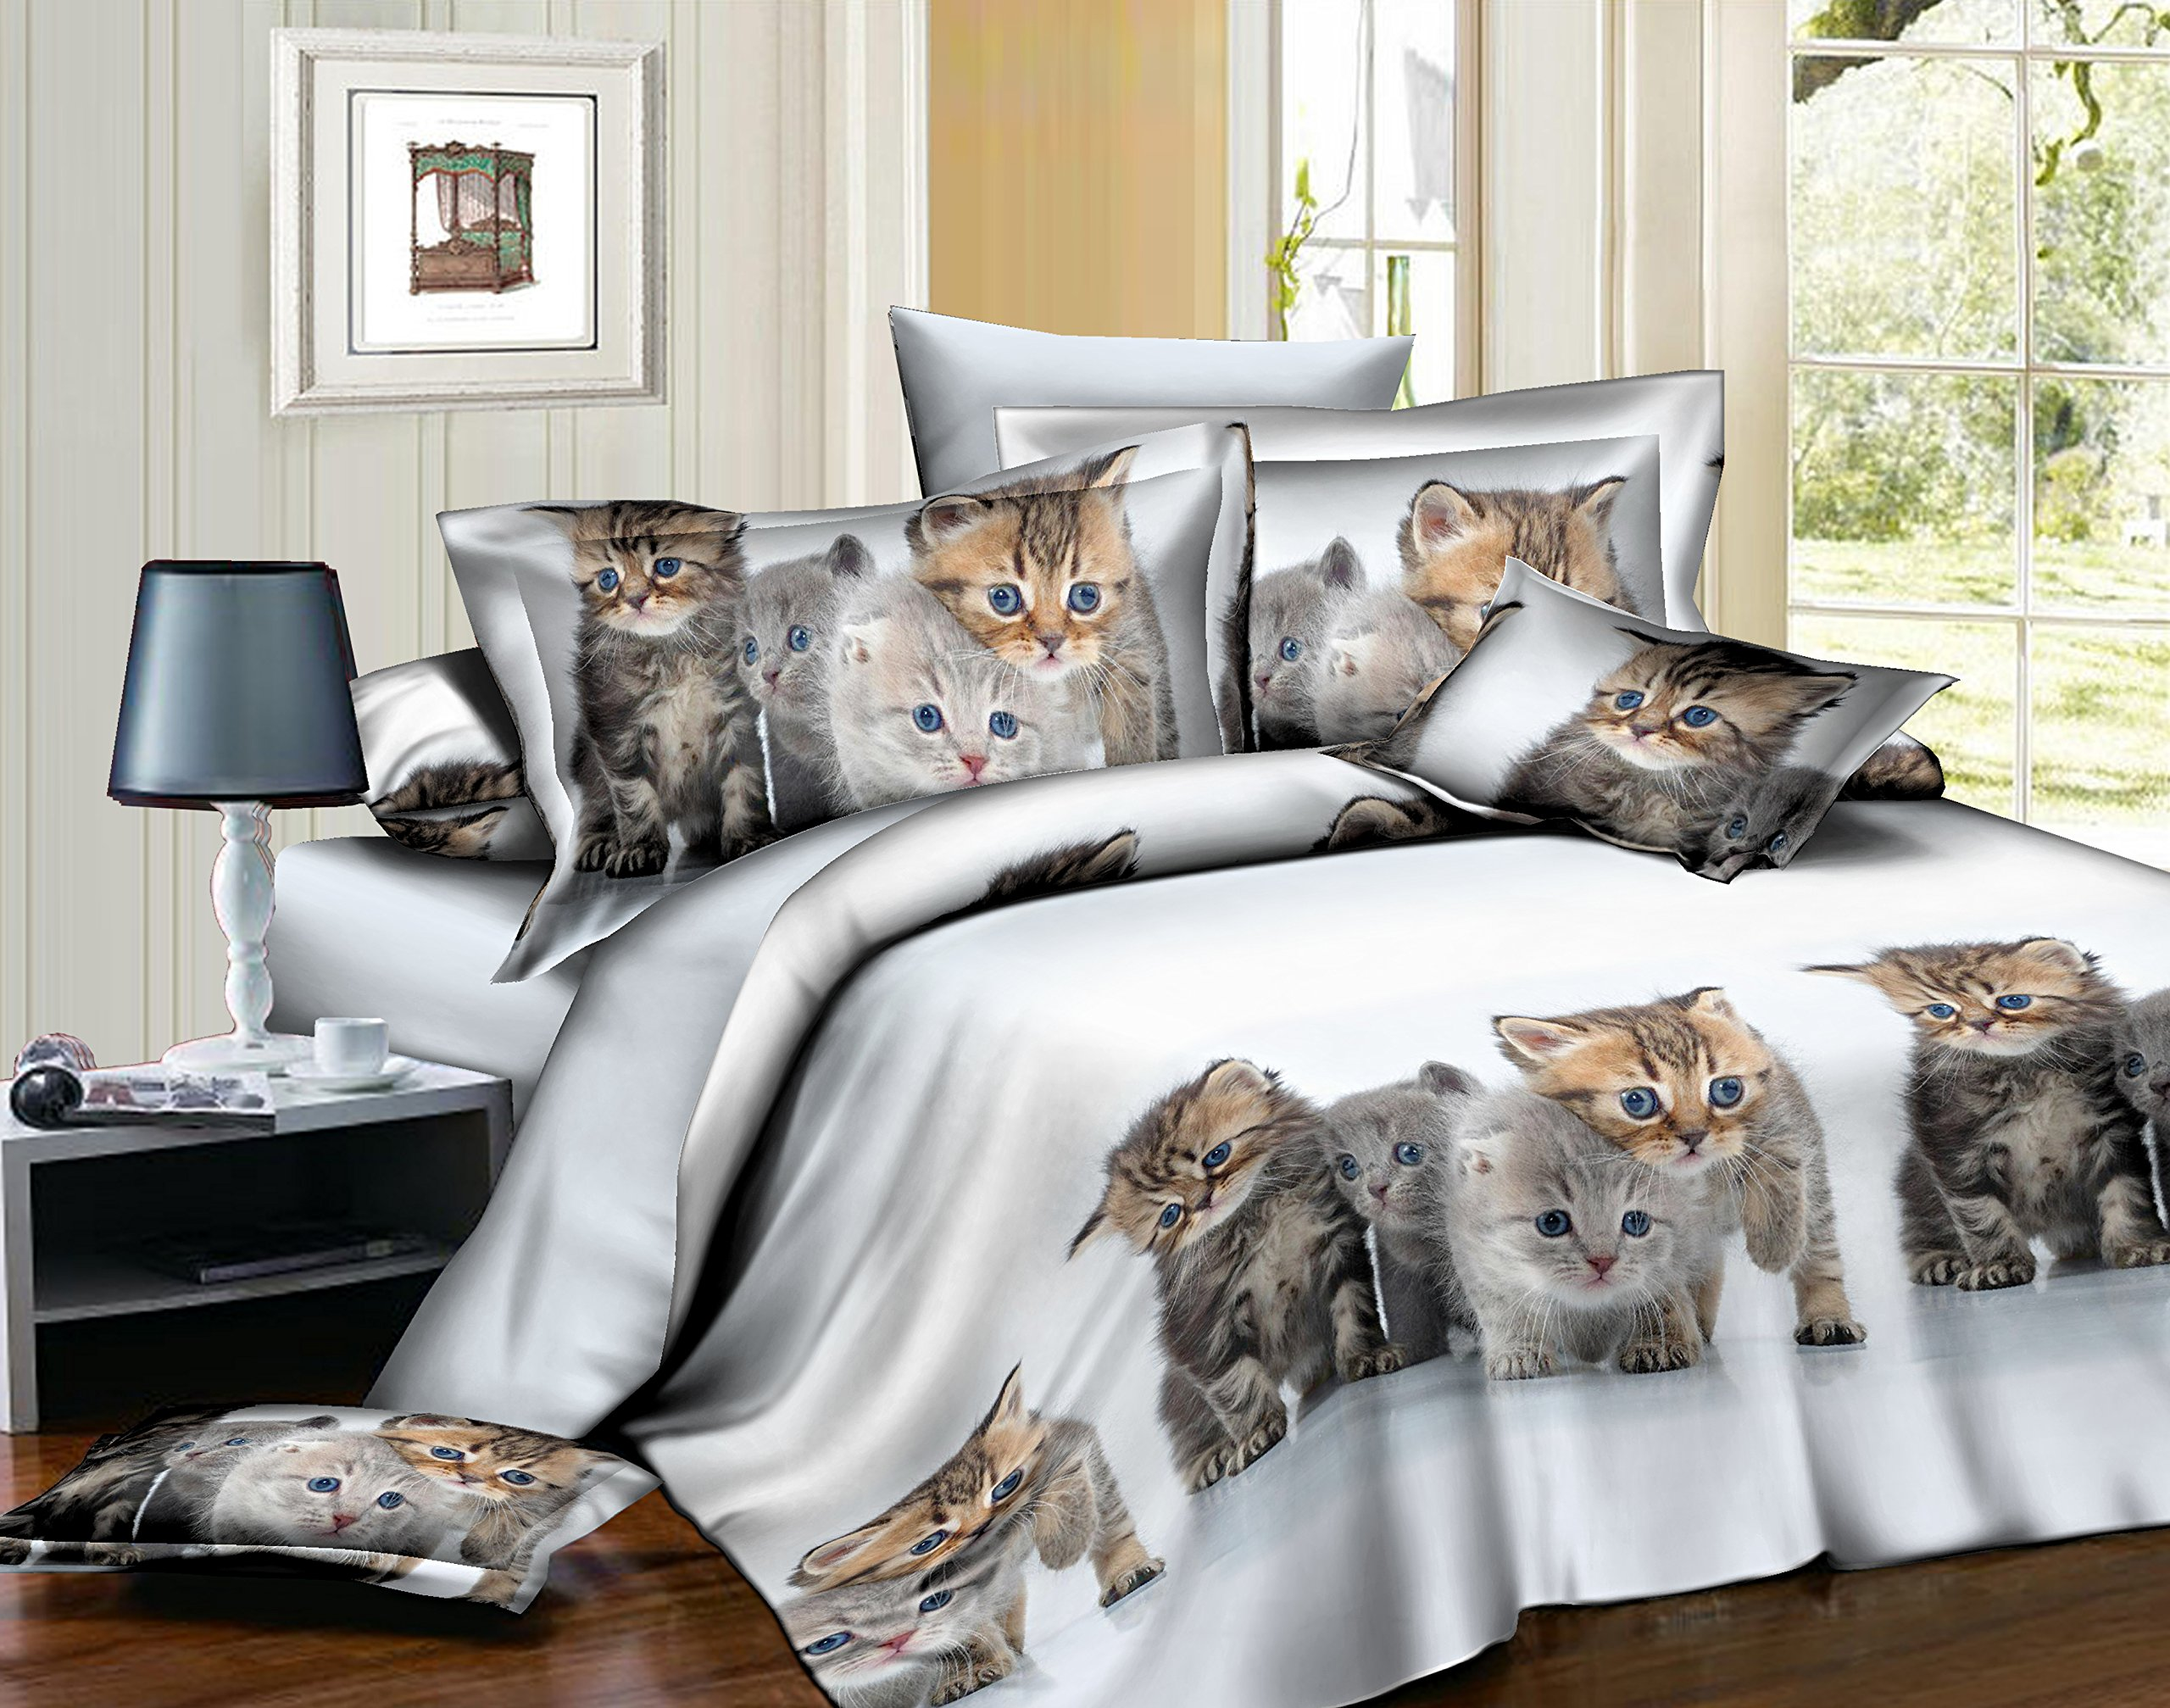 Longji Children 3D Cats pattern(There are Multiple repetition patterns like the picture) Bedding Sets Bed Set Duvet cover Bed sheet Pillowcase (Twin 2Pcs)